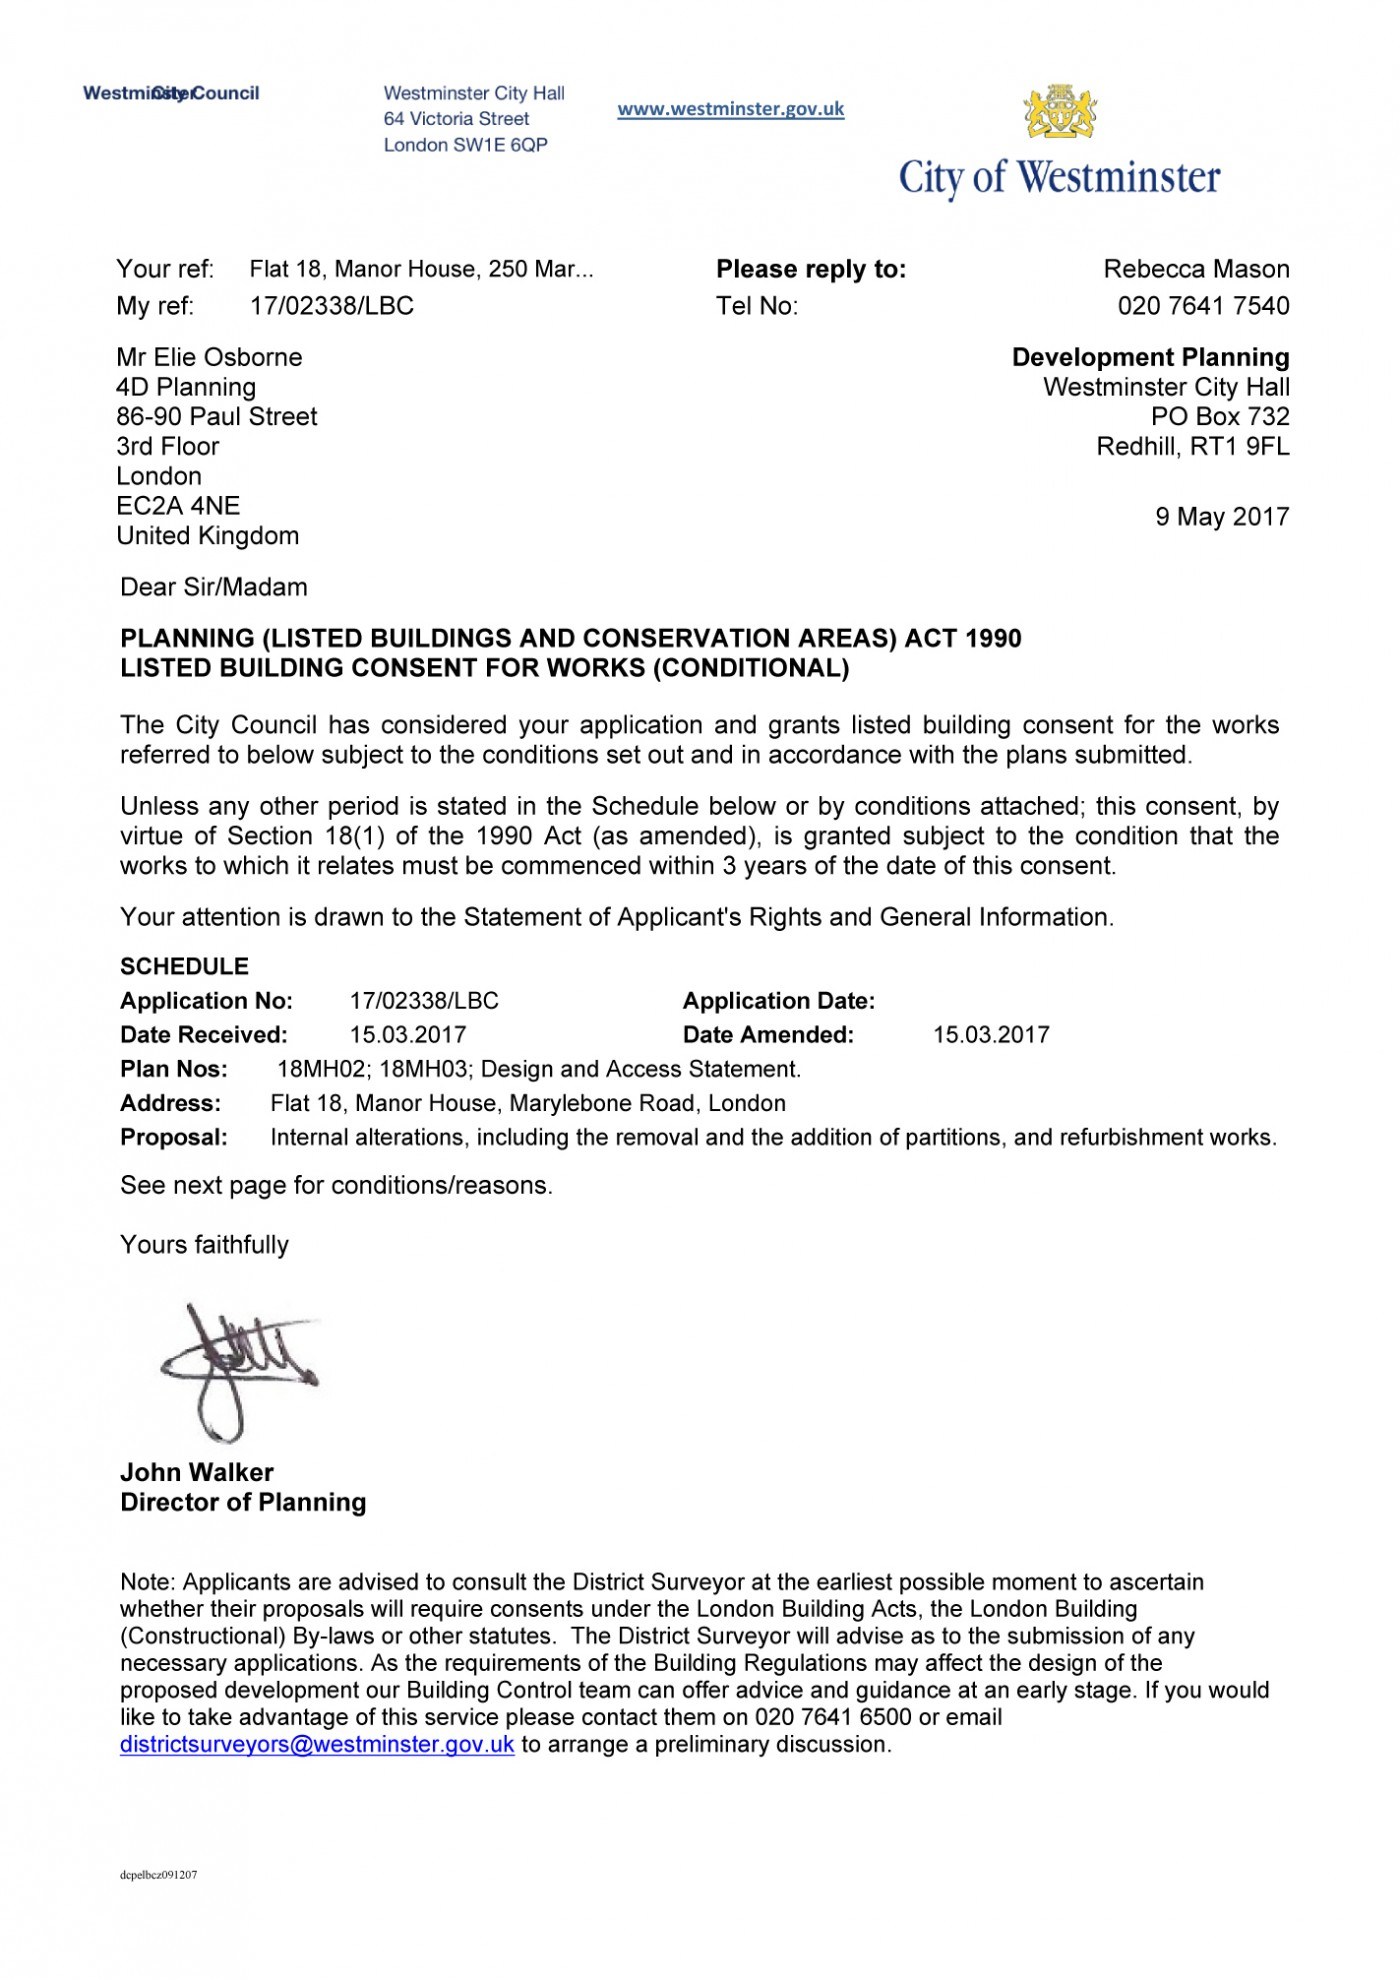 decision notice - Westminster Council